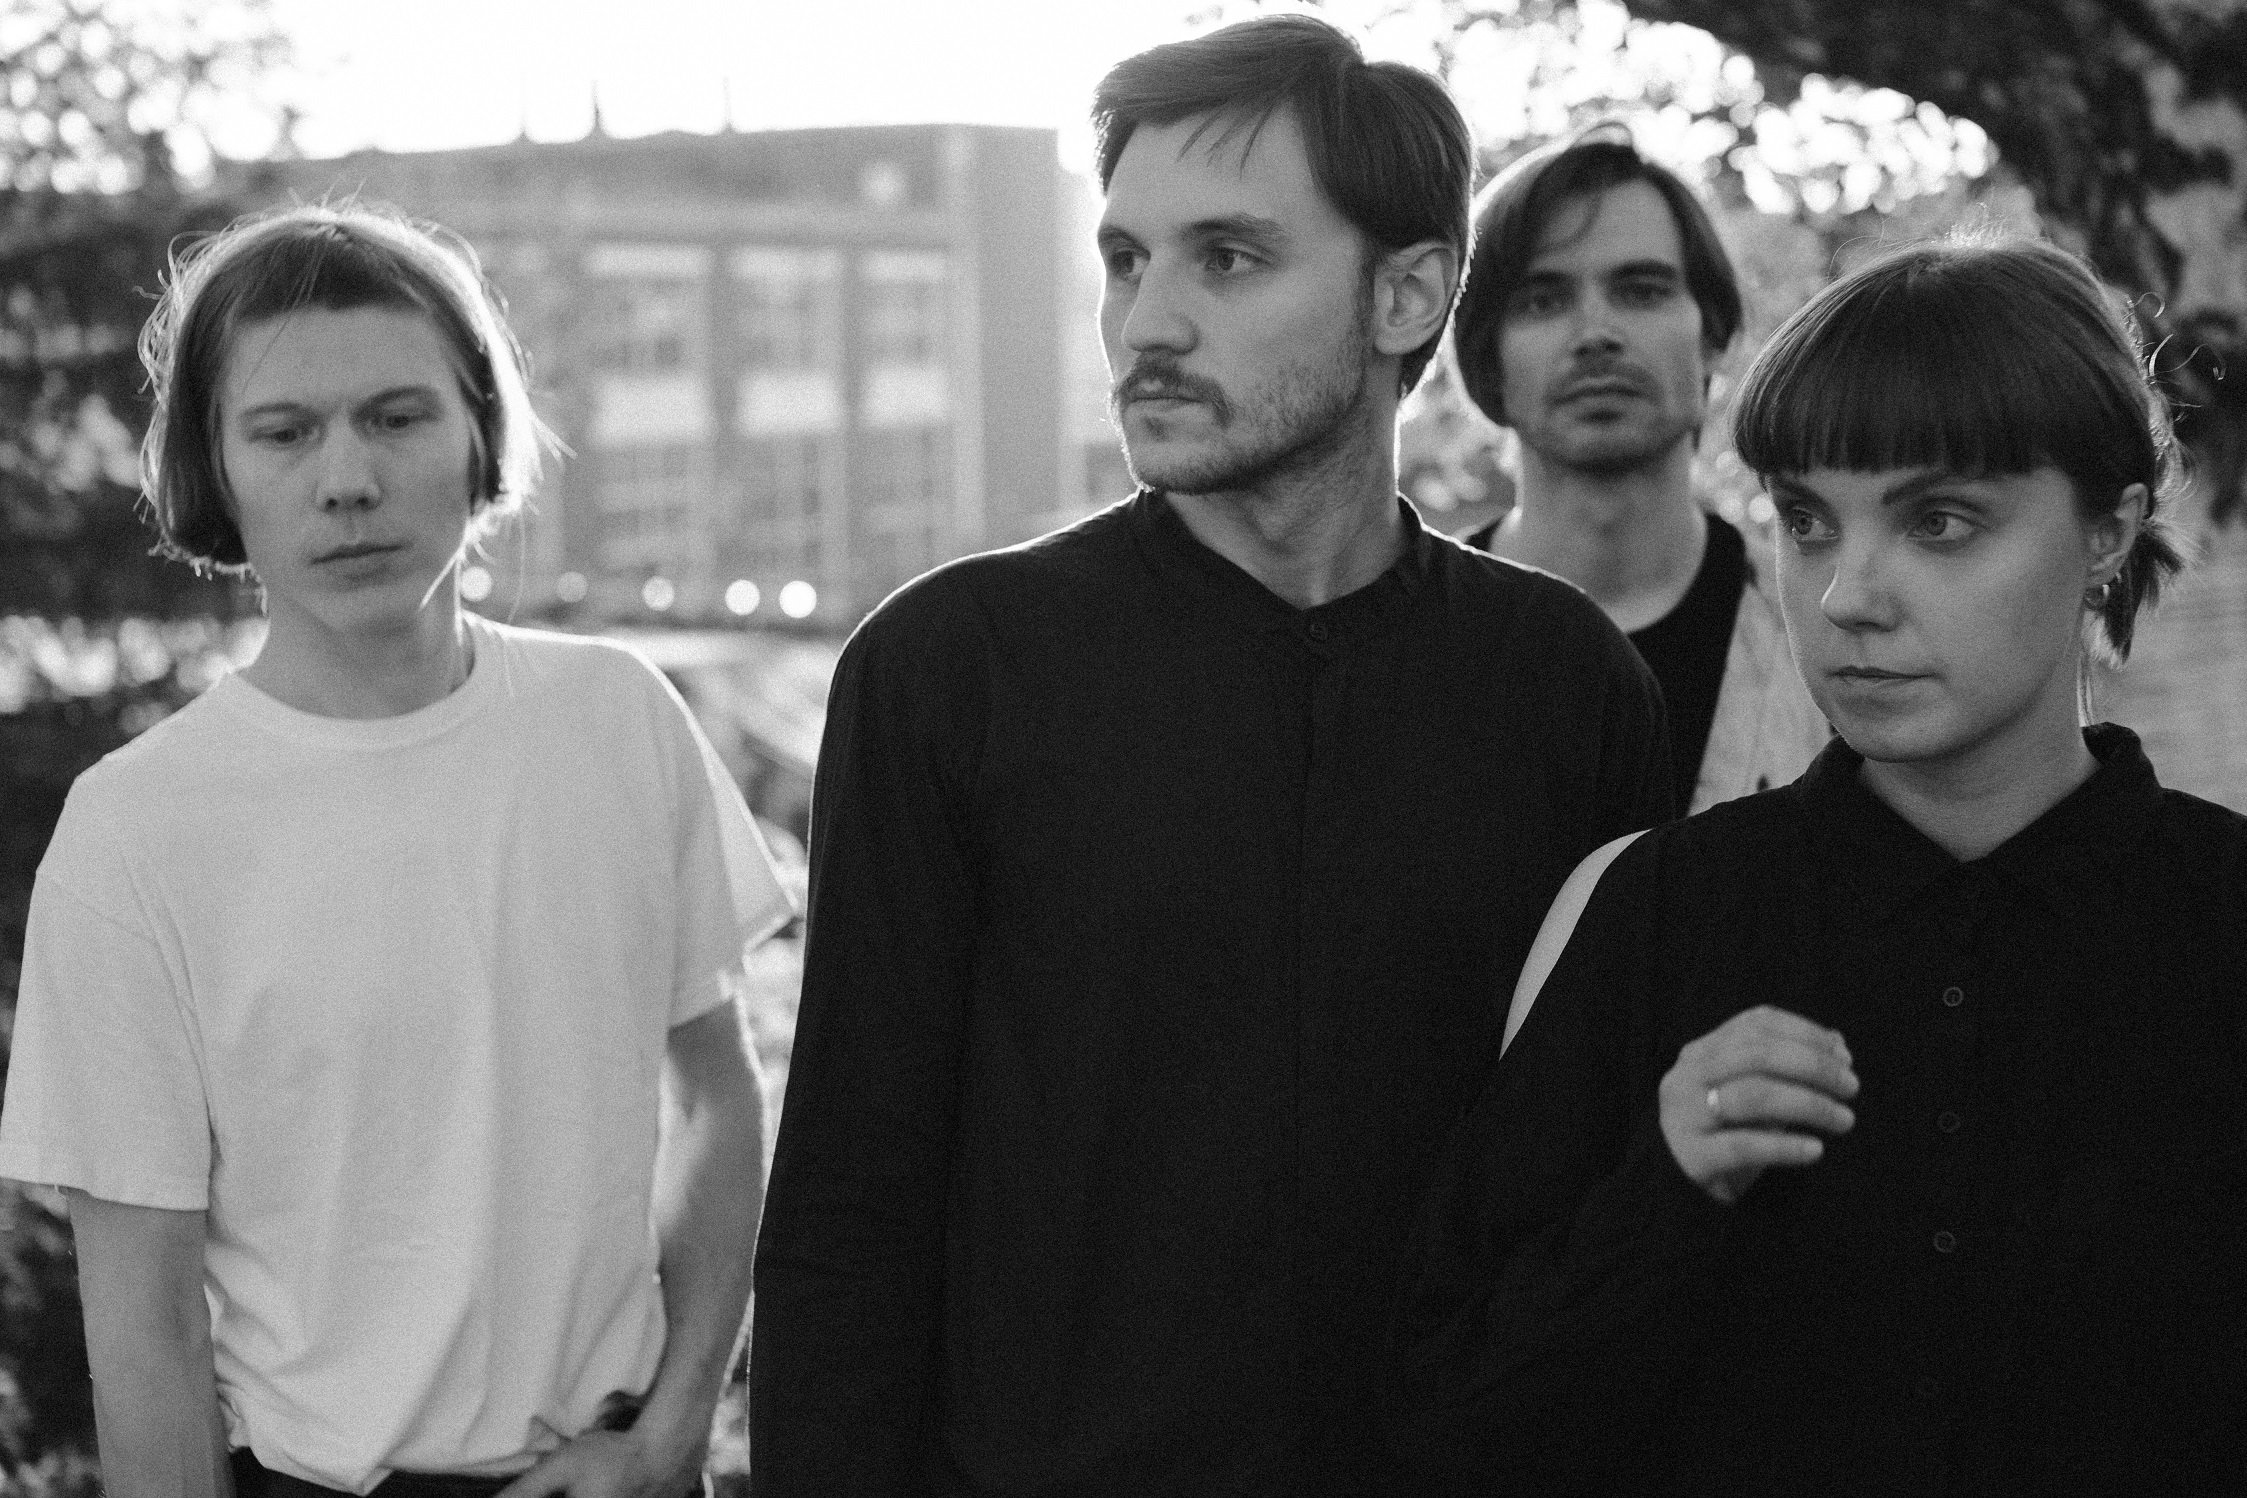 GNOOMES announce new album, MU!, due 31st May on Rocket